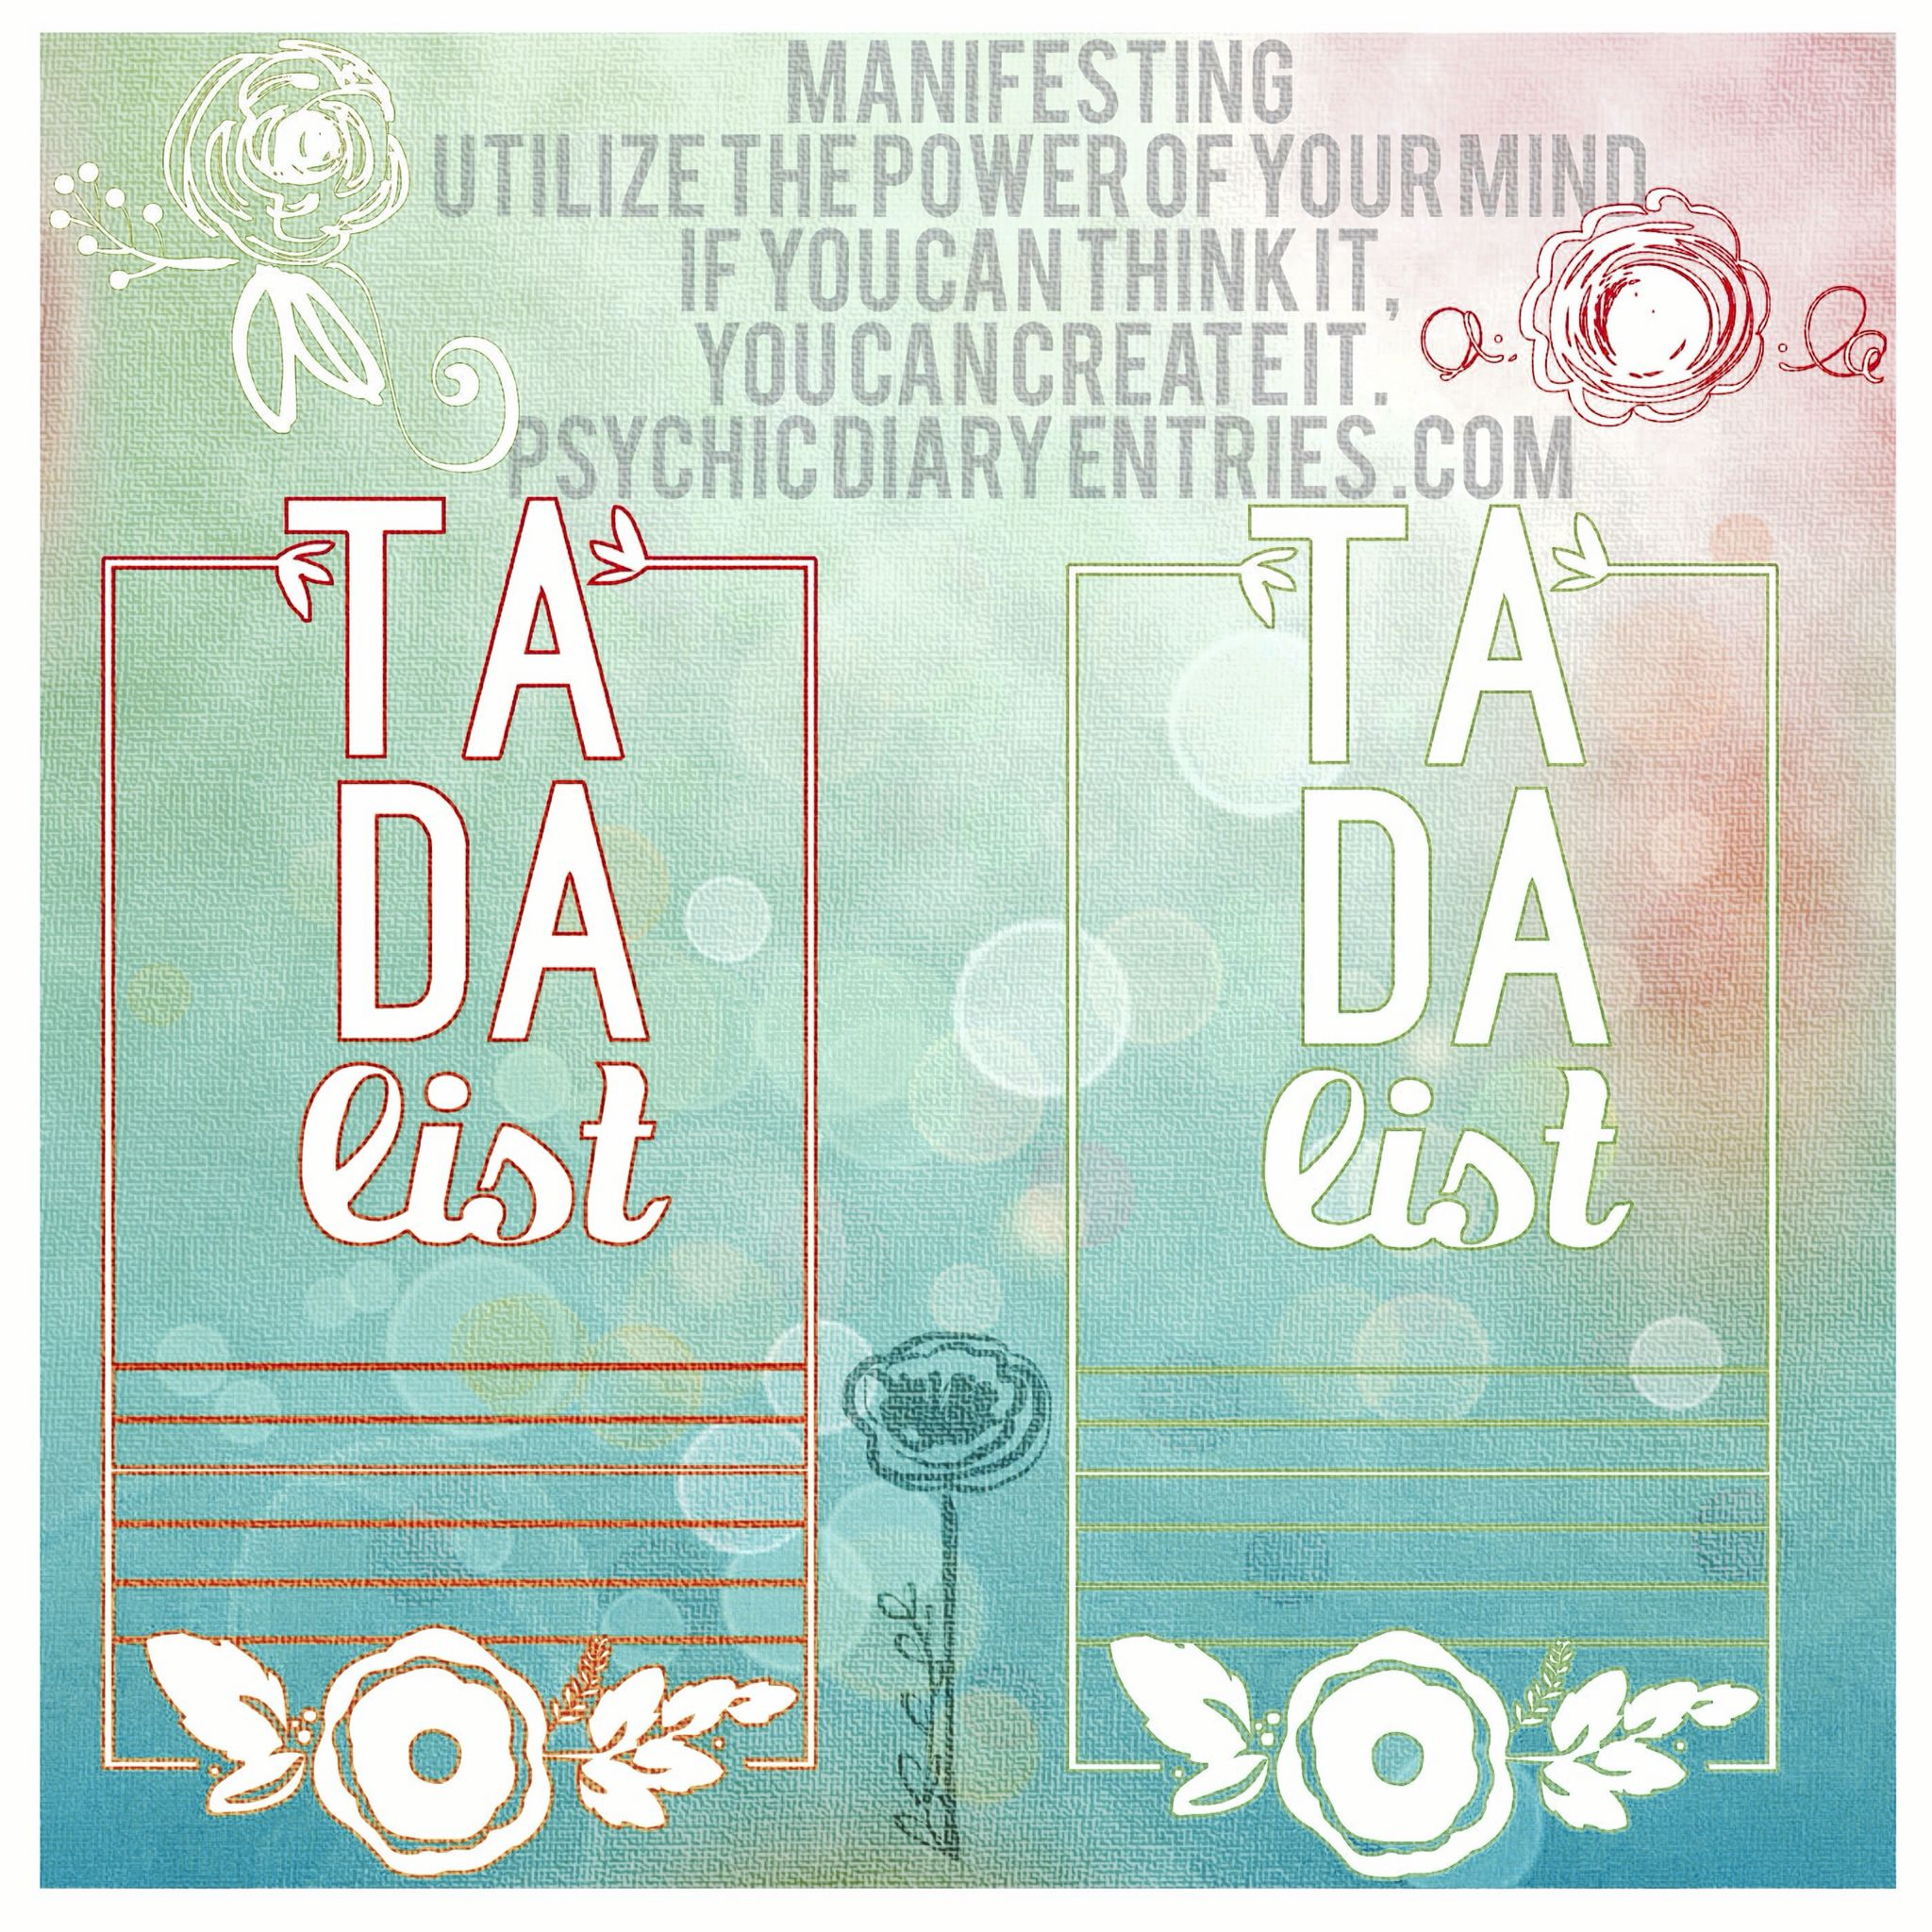 Manifesting: Utilize the Power of your Mind! If You can Think it ...